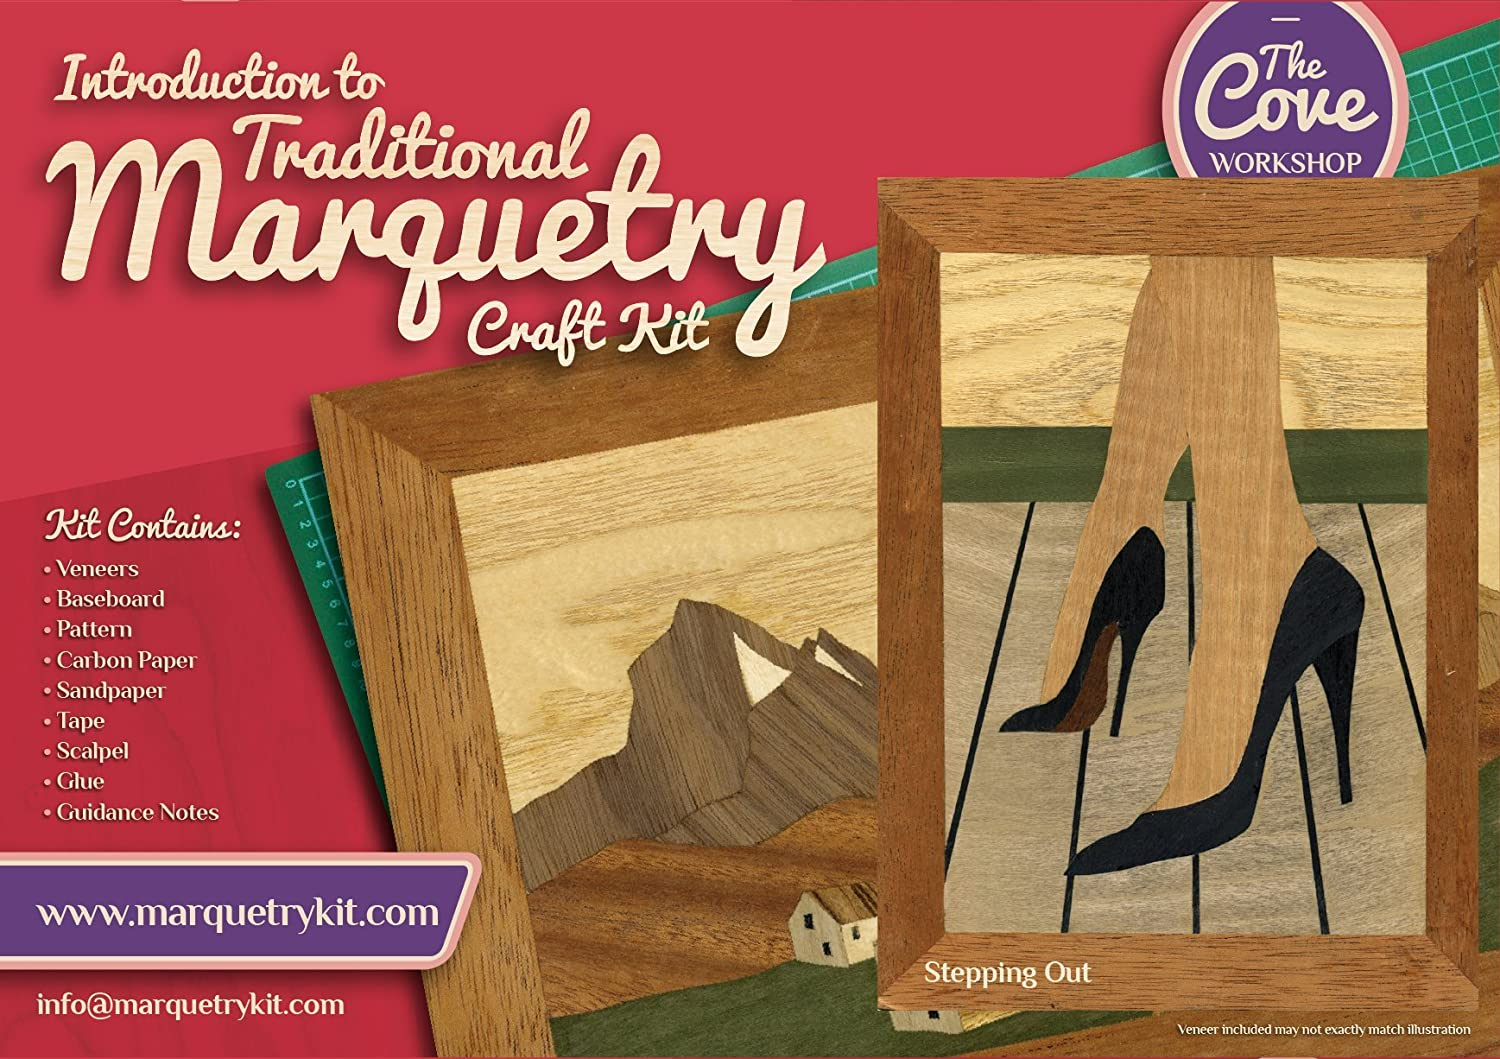 Traditional beginner Marquetry Craft Kit by Cove Workshop Clyde Puffer